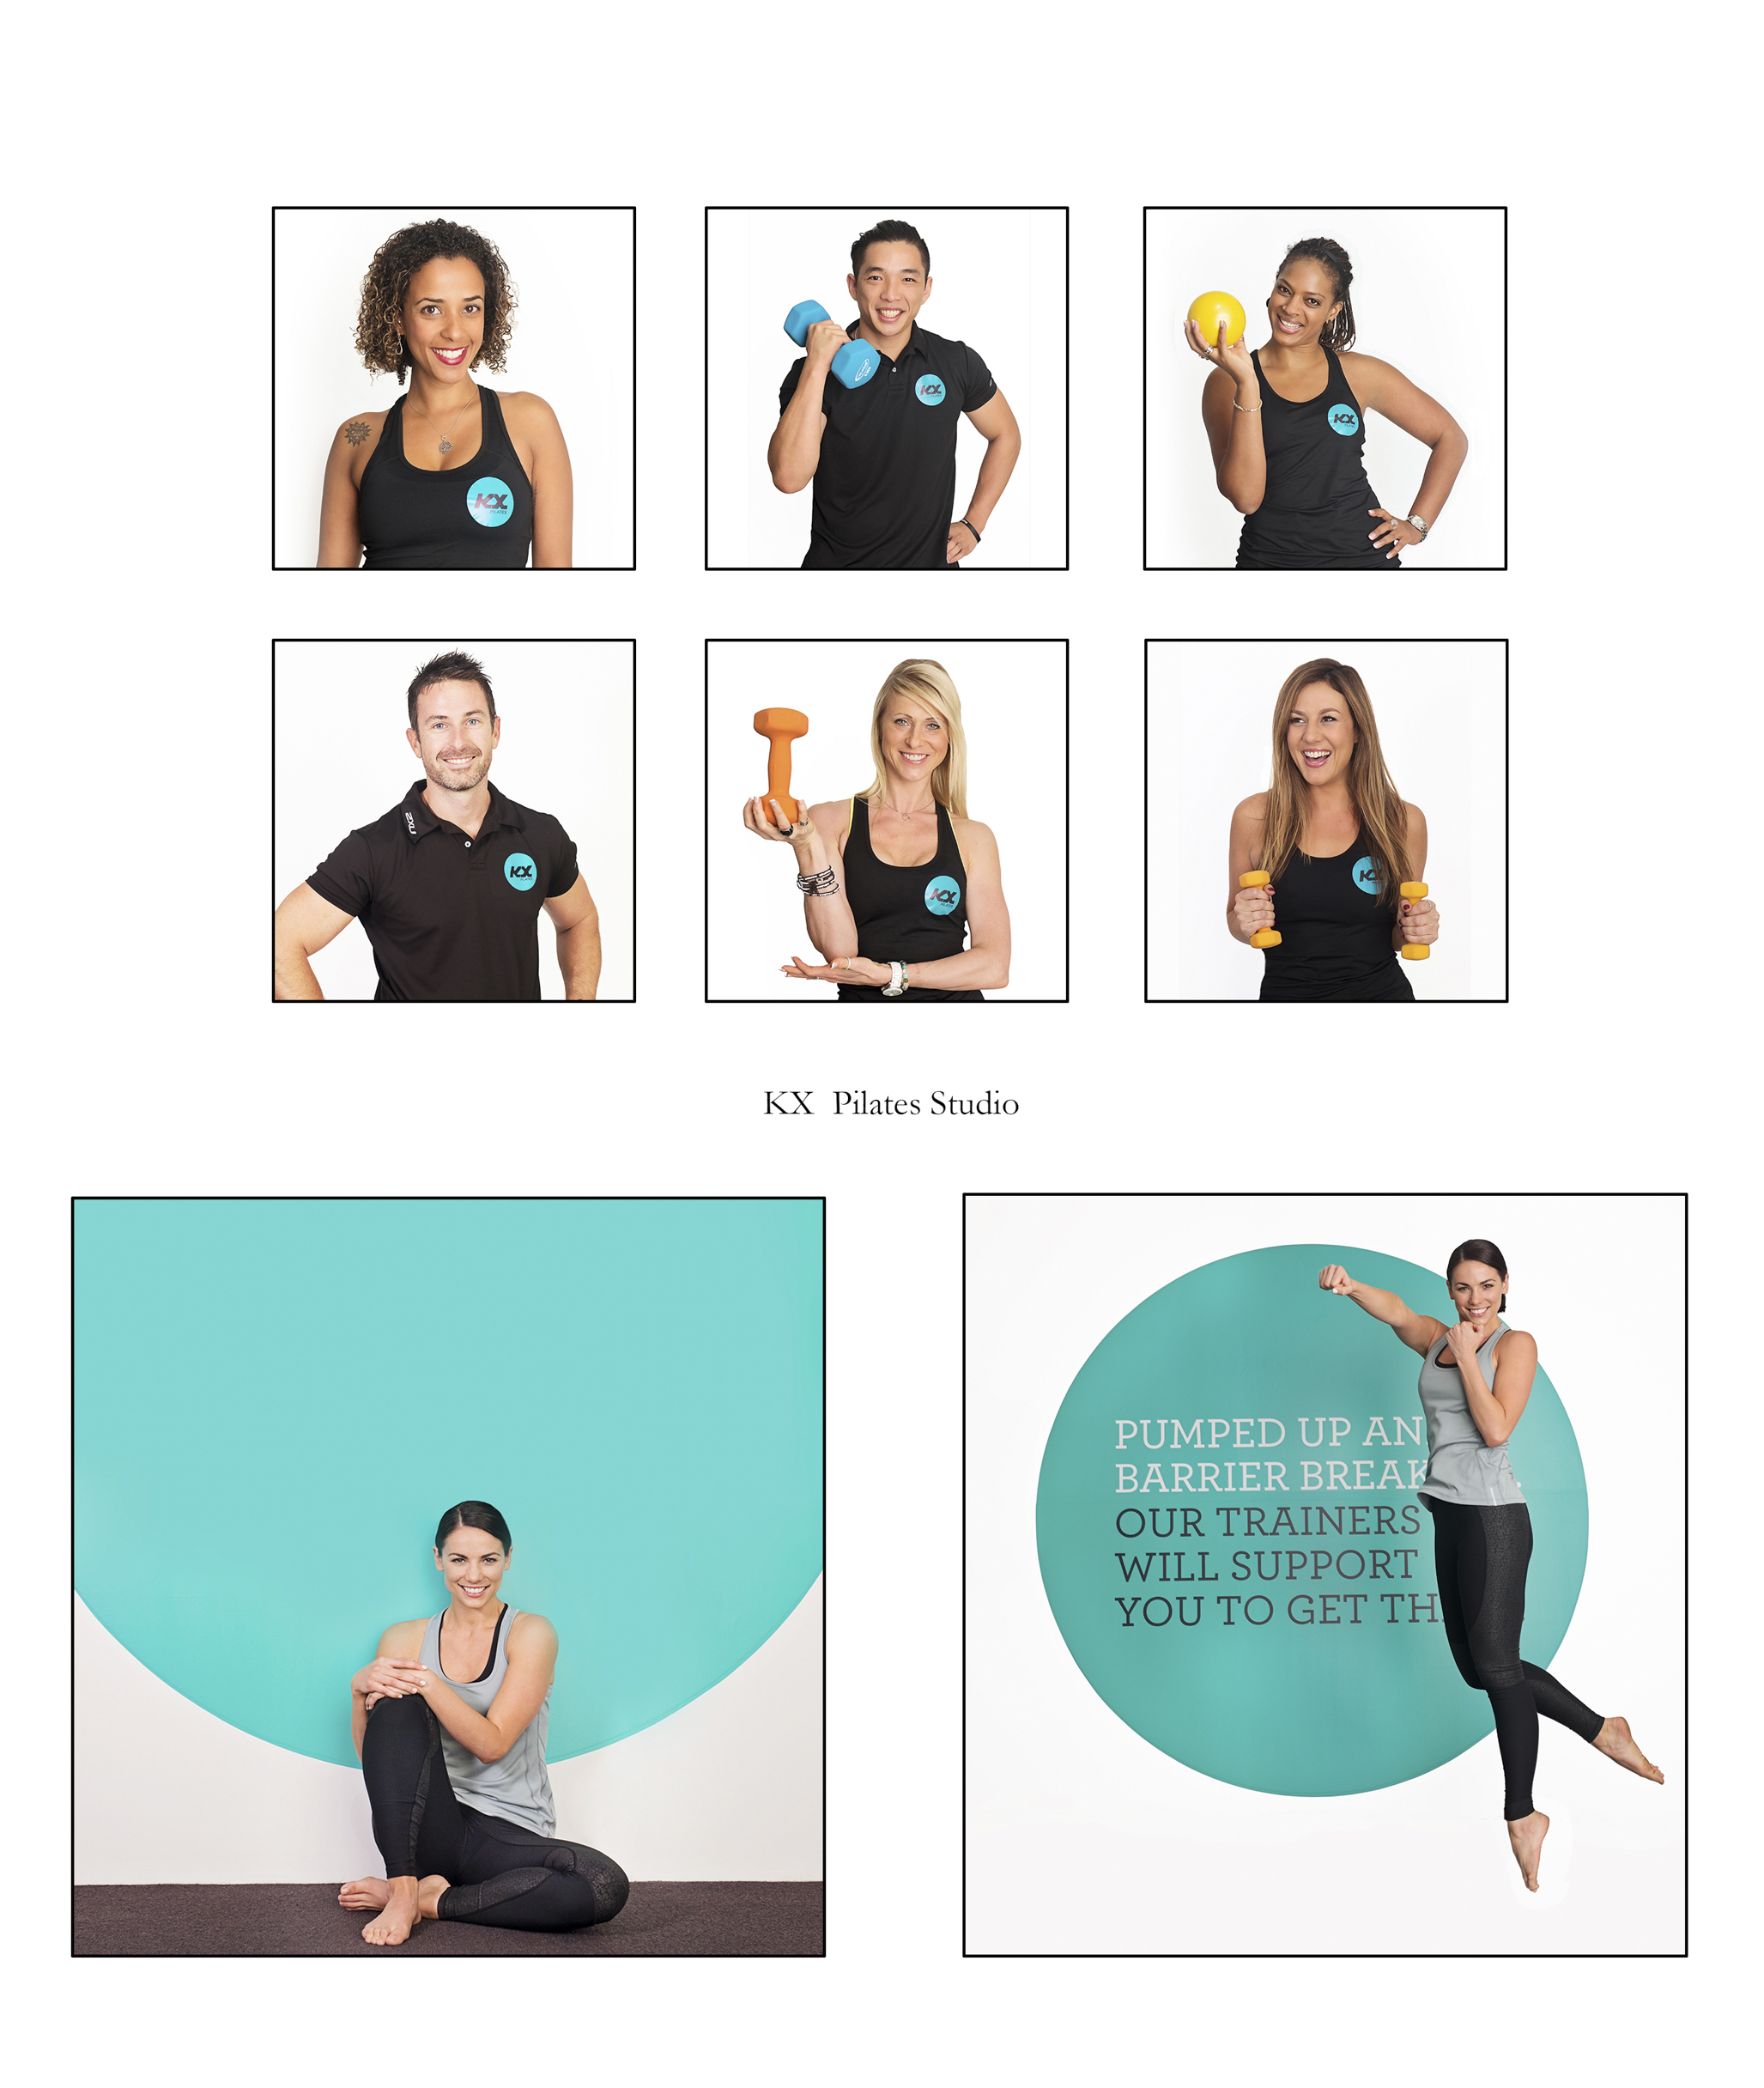 Images needed for KX Pilates Studio for marketing material